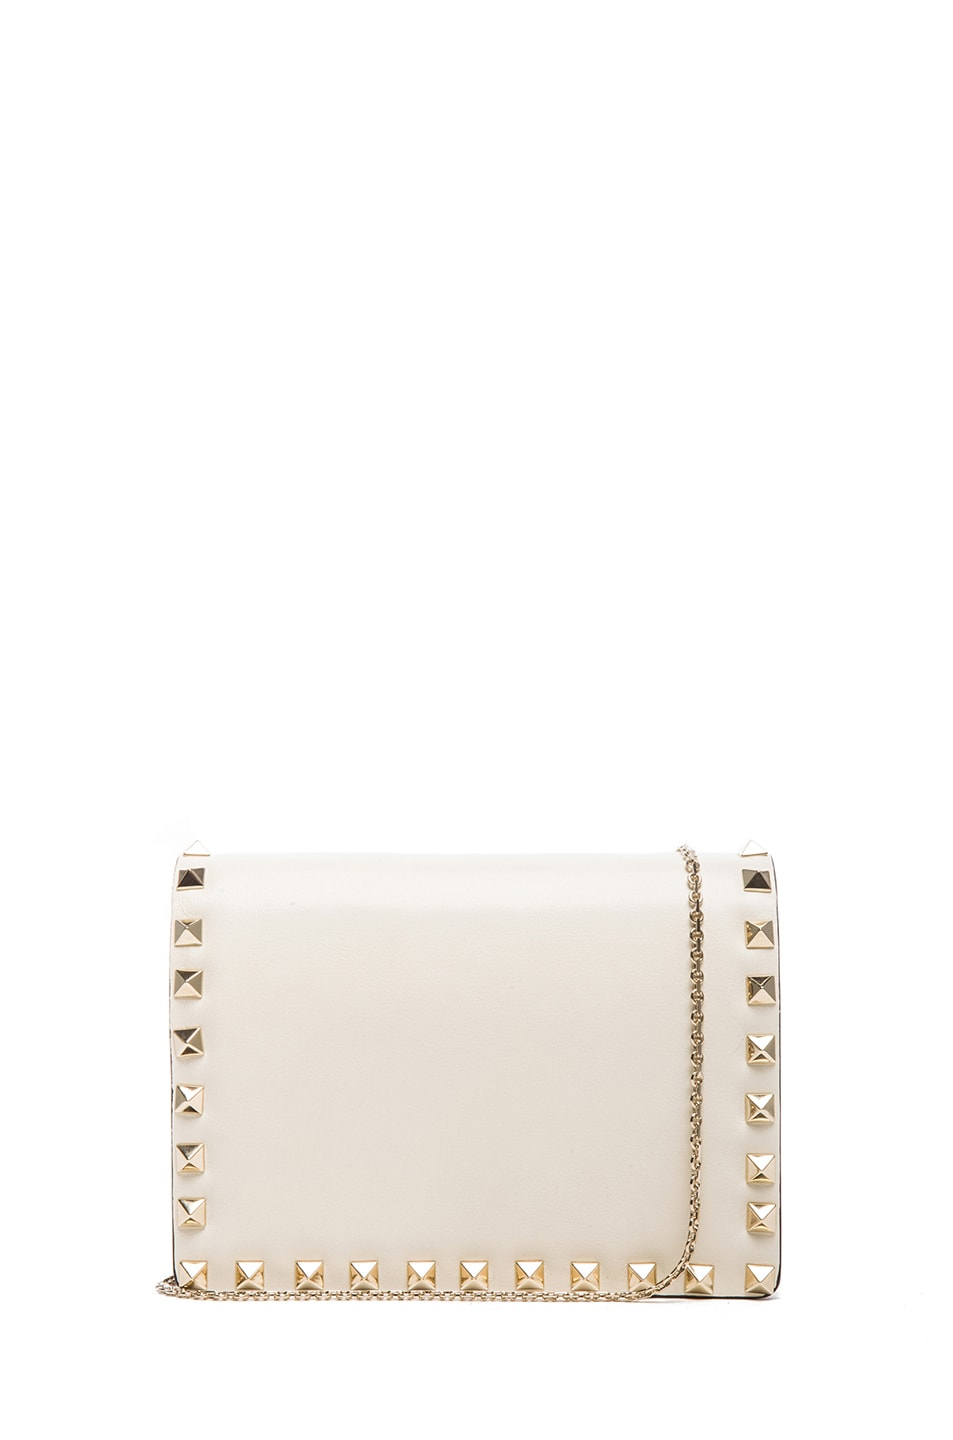 736b73320d Image 1 of Valentino Small Rockstud Flap with Chain in Light Ivory